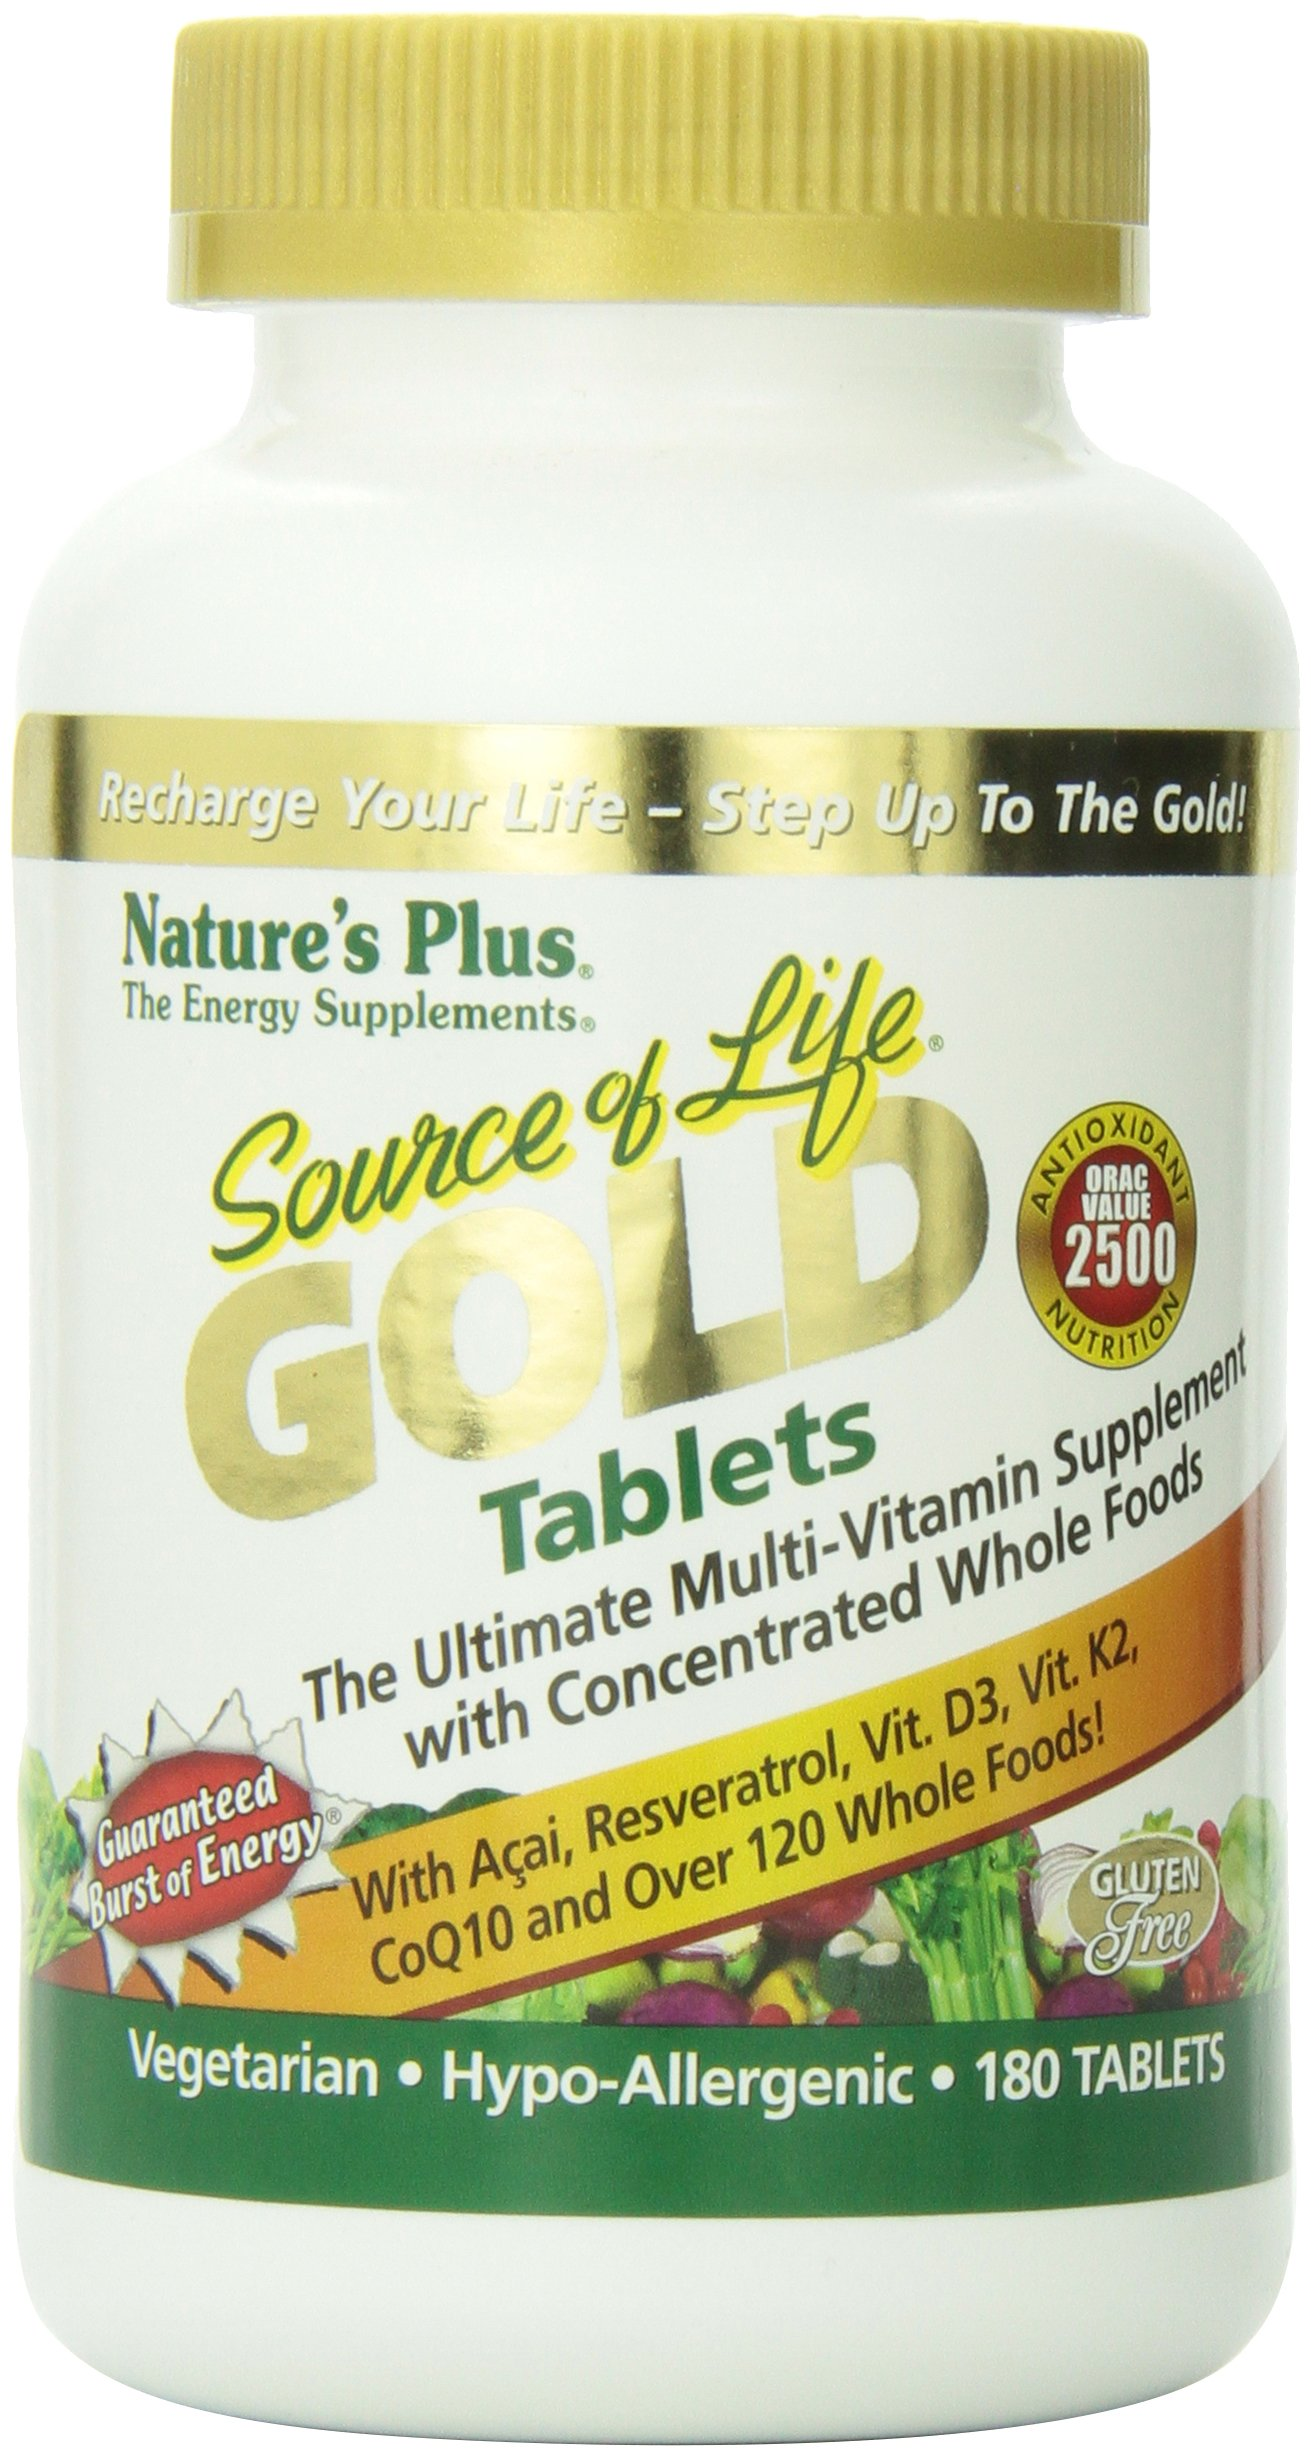 Source of Life GOLD Tablets, 180 count